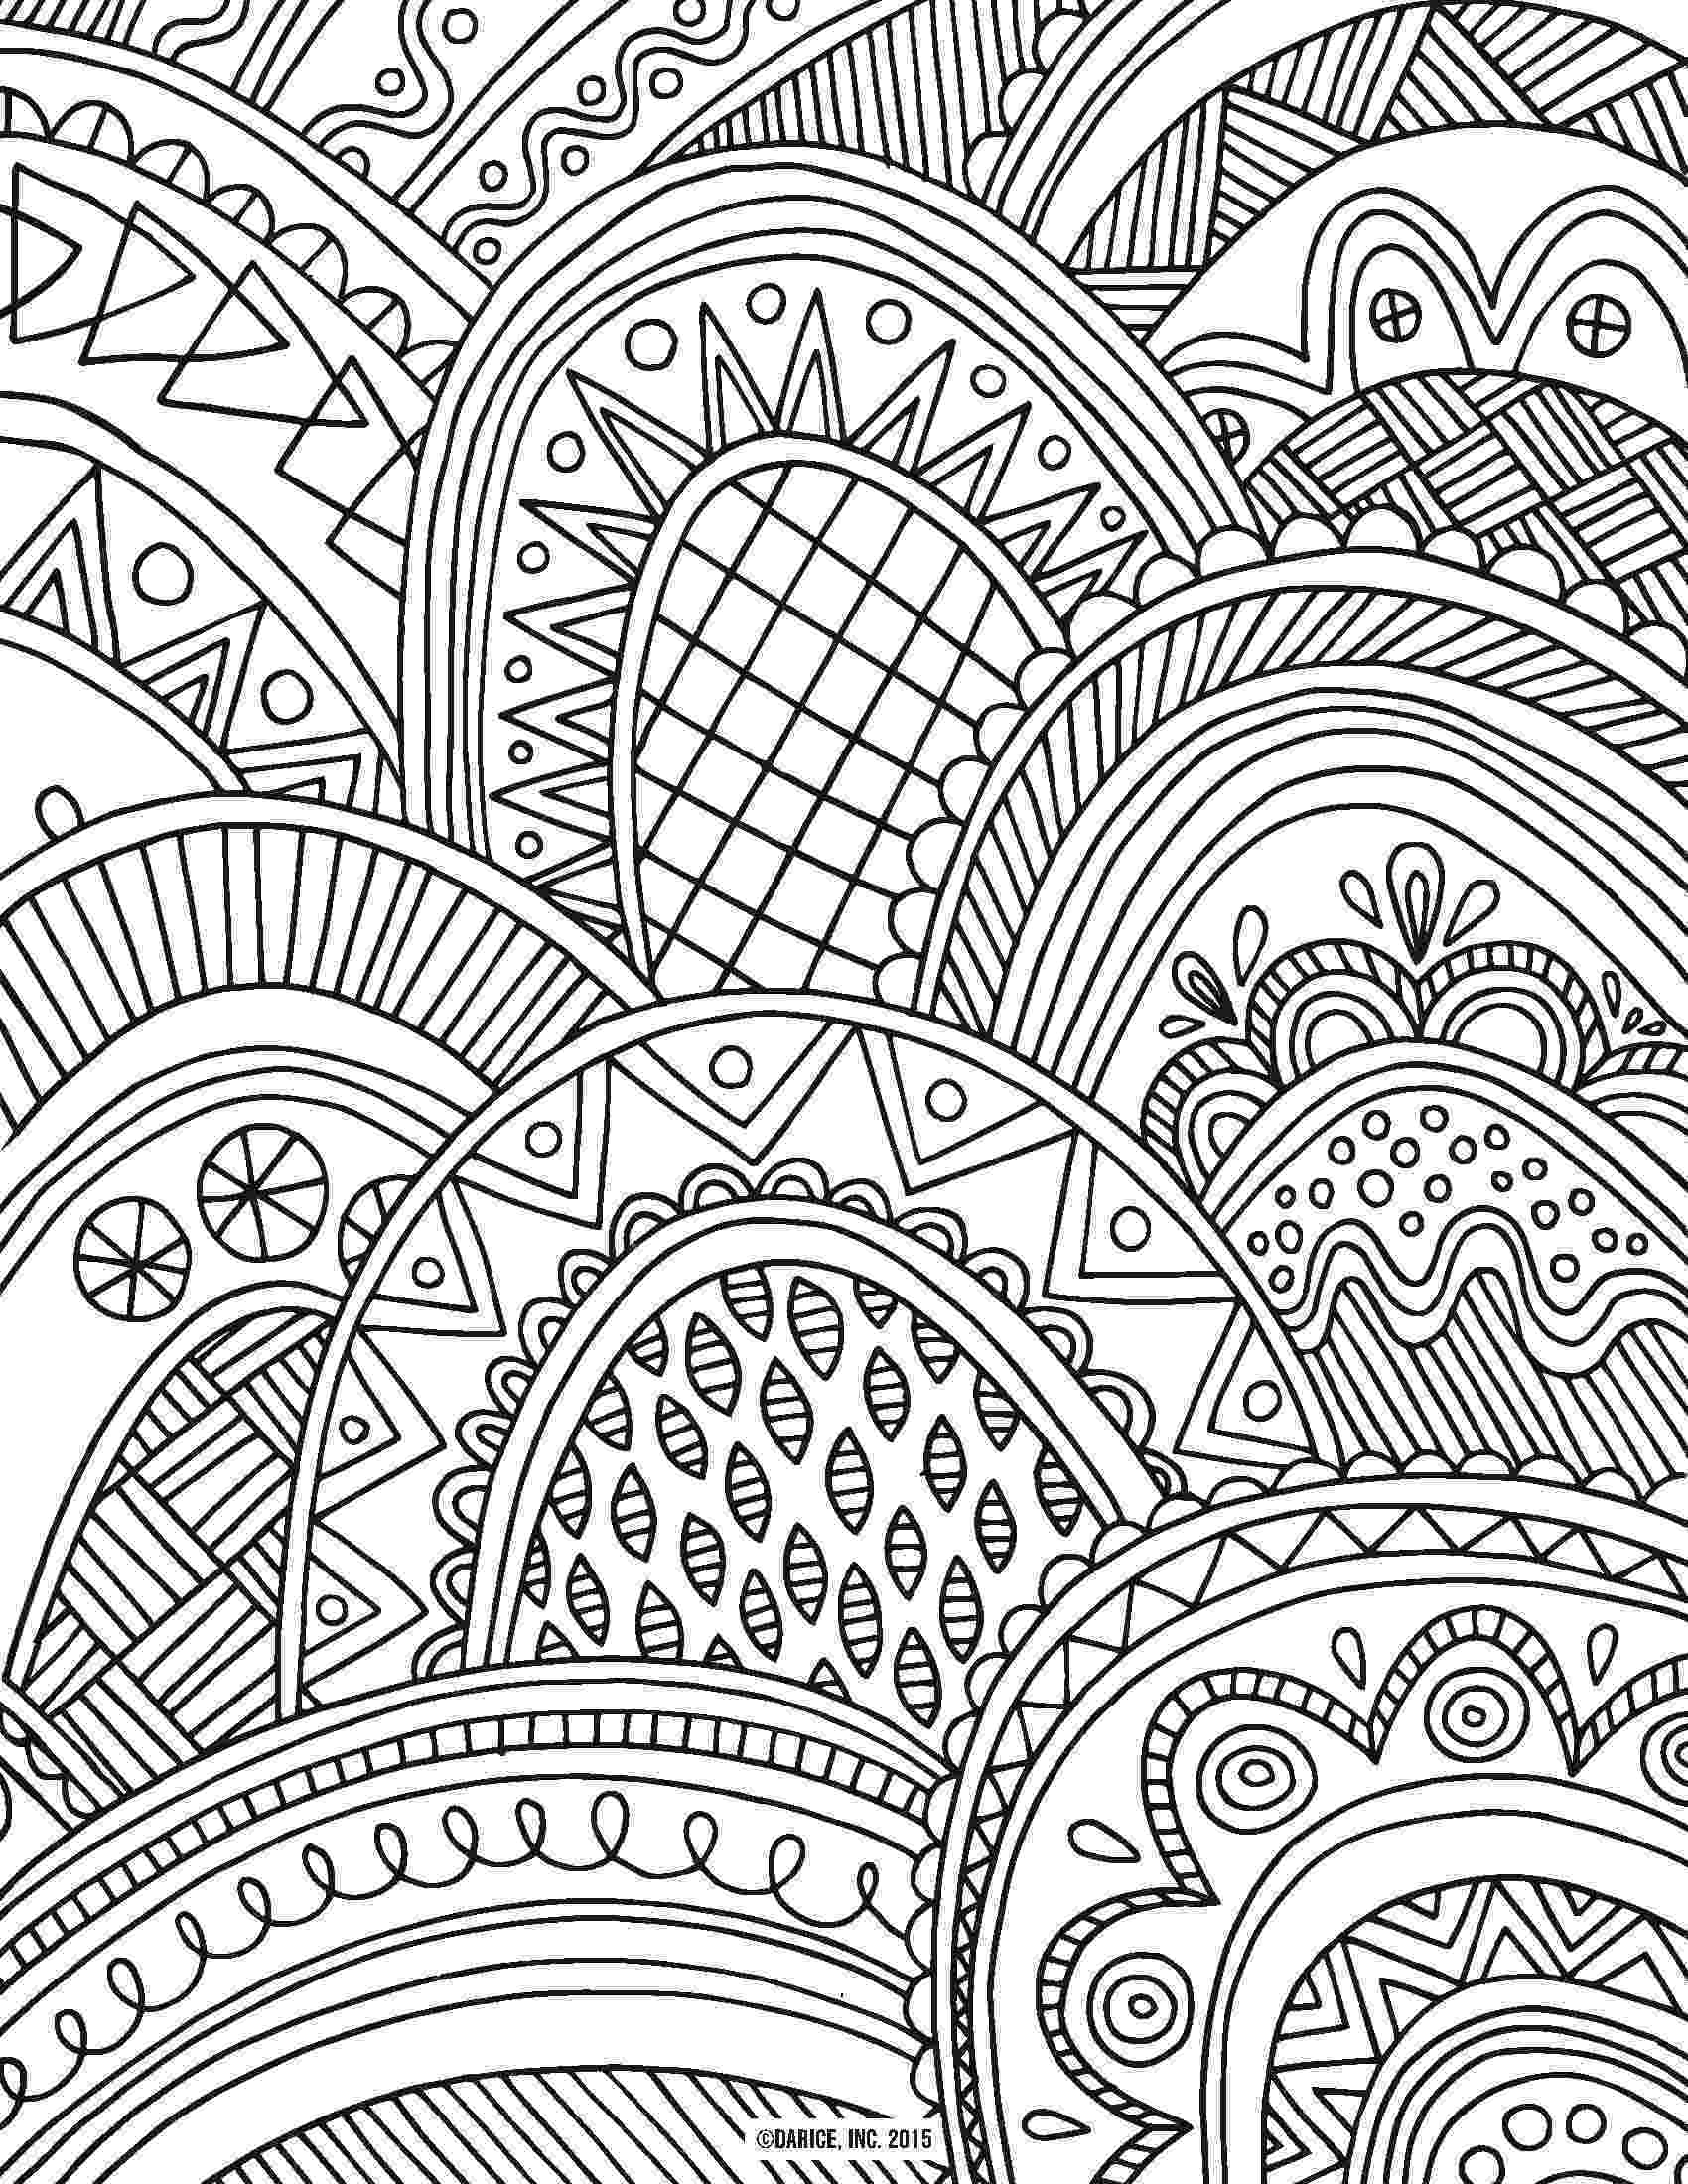 colouring for adults lize beekman colorful chicken adult coloring page favecraftscom colouring adults lize for beekman